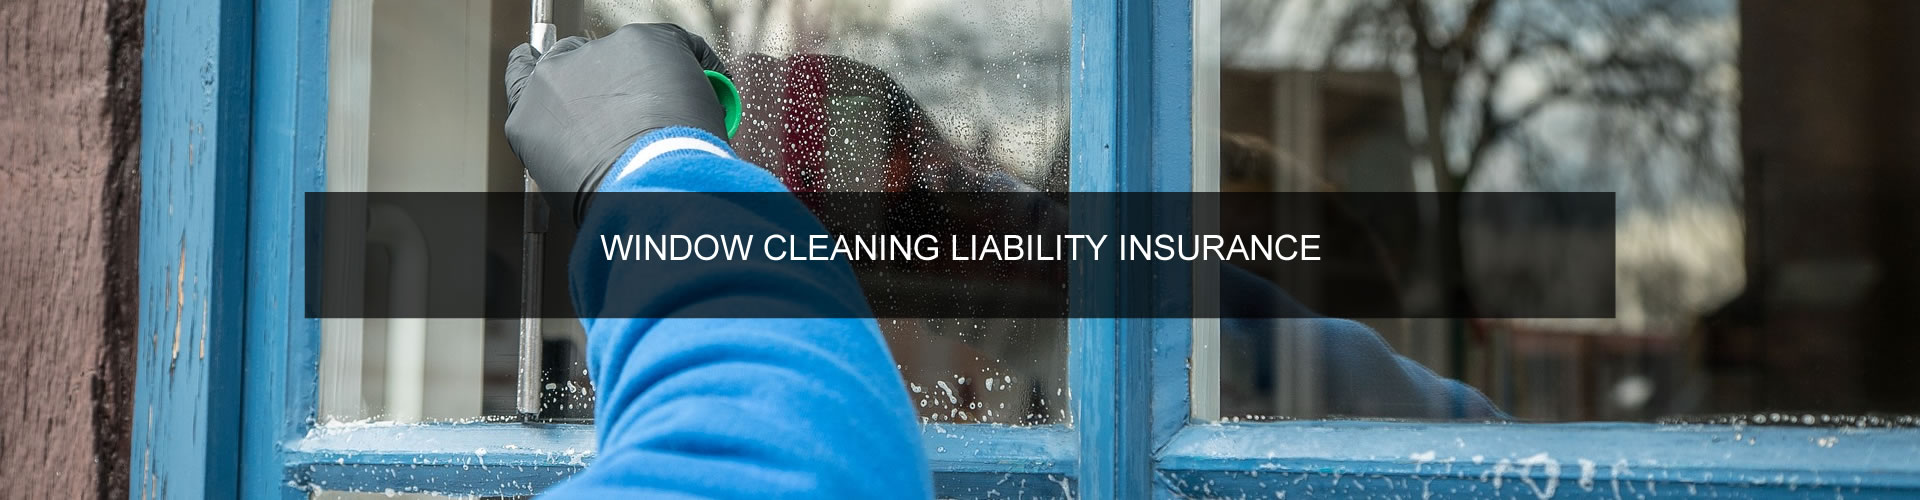 Window Cleaners Liability Insurance